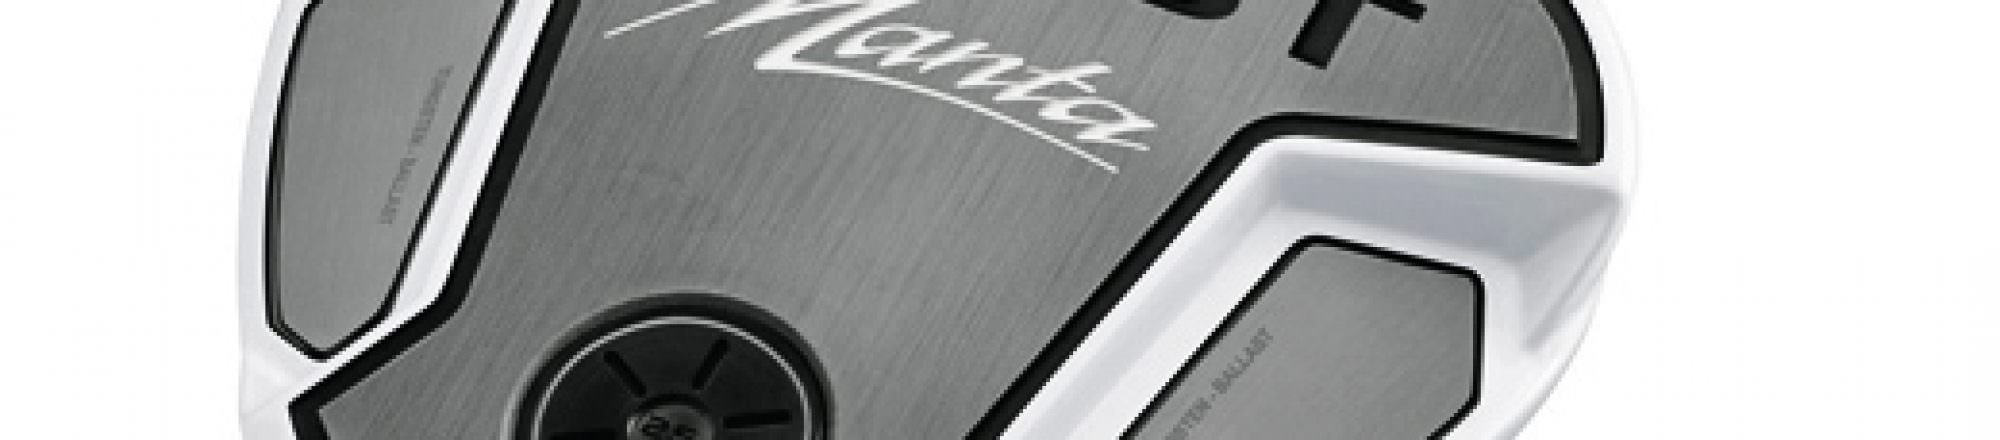 TaylorMade introduce new Ghost putters